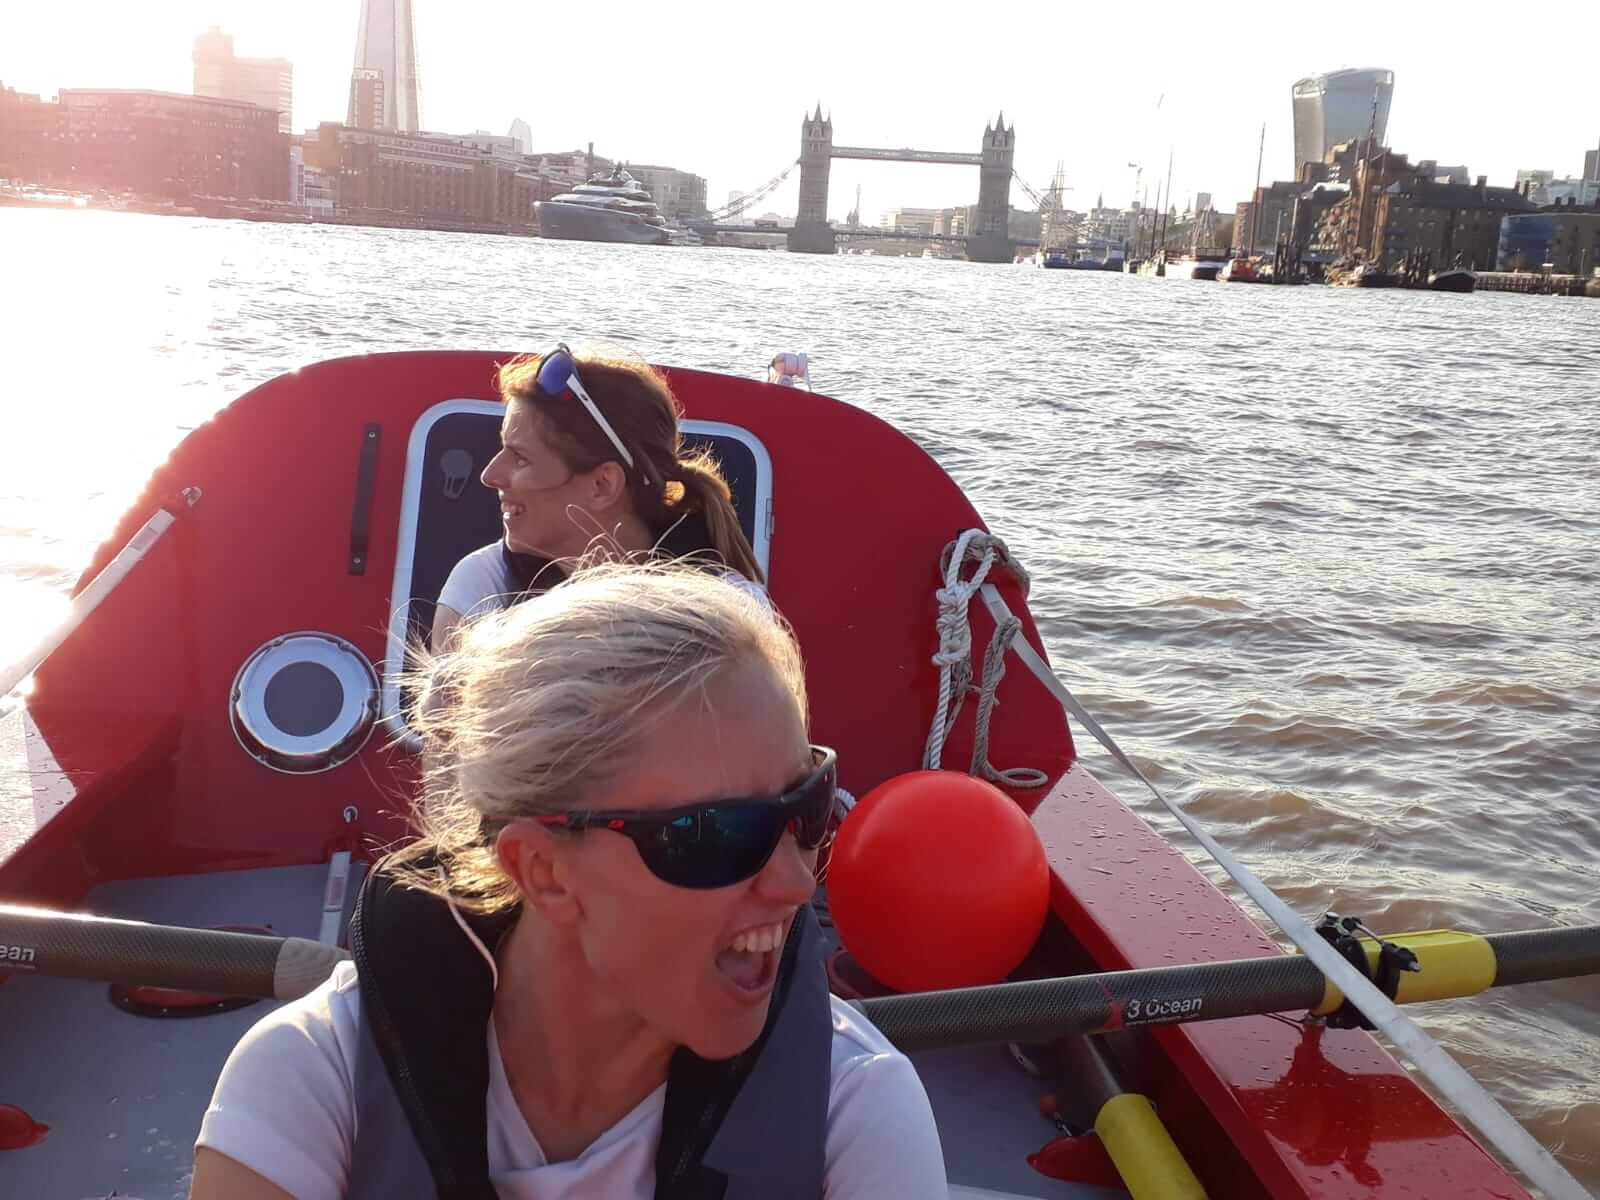 Rowing down the Thames